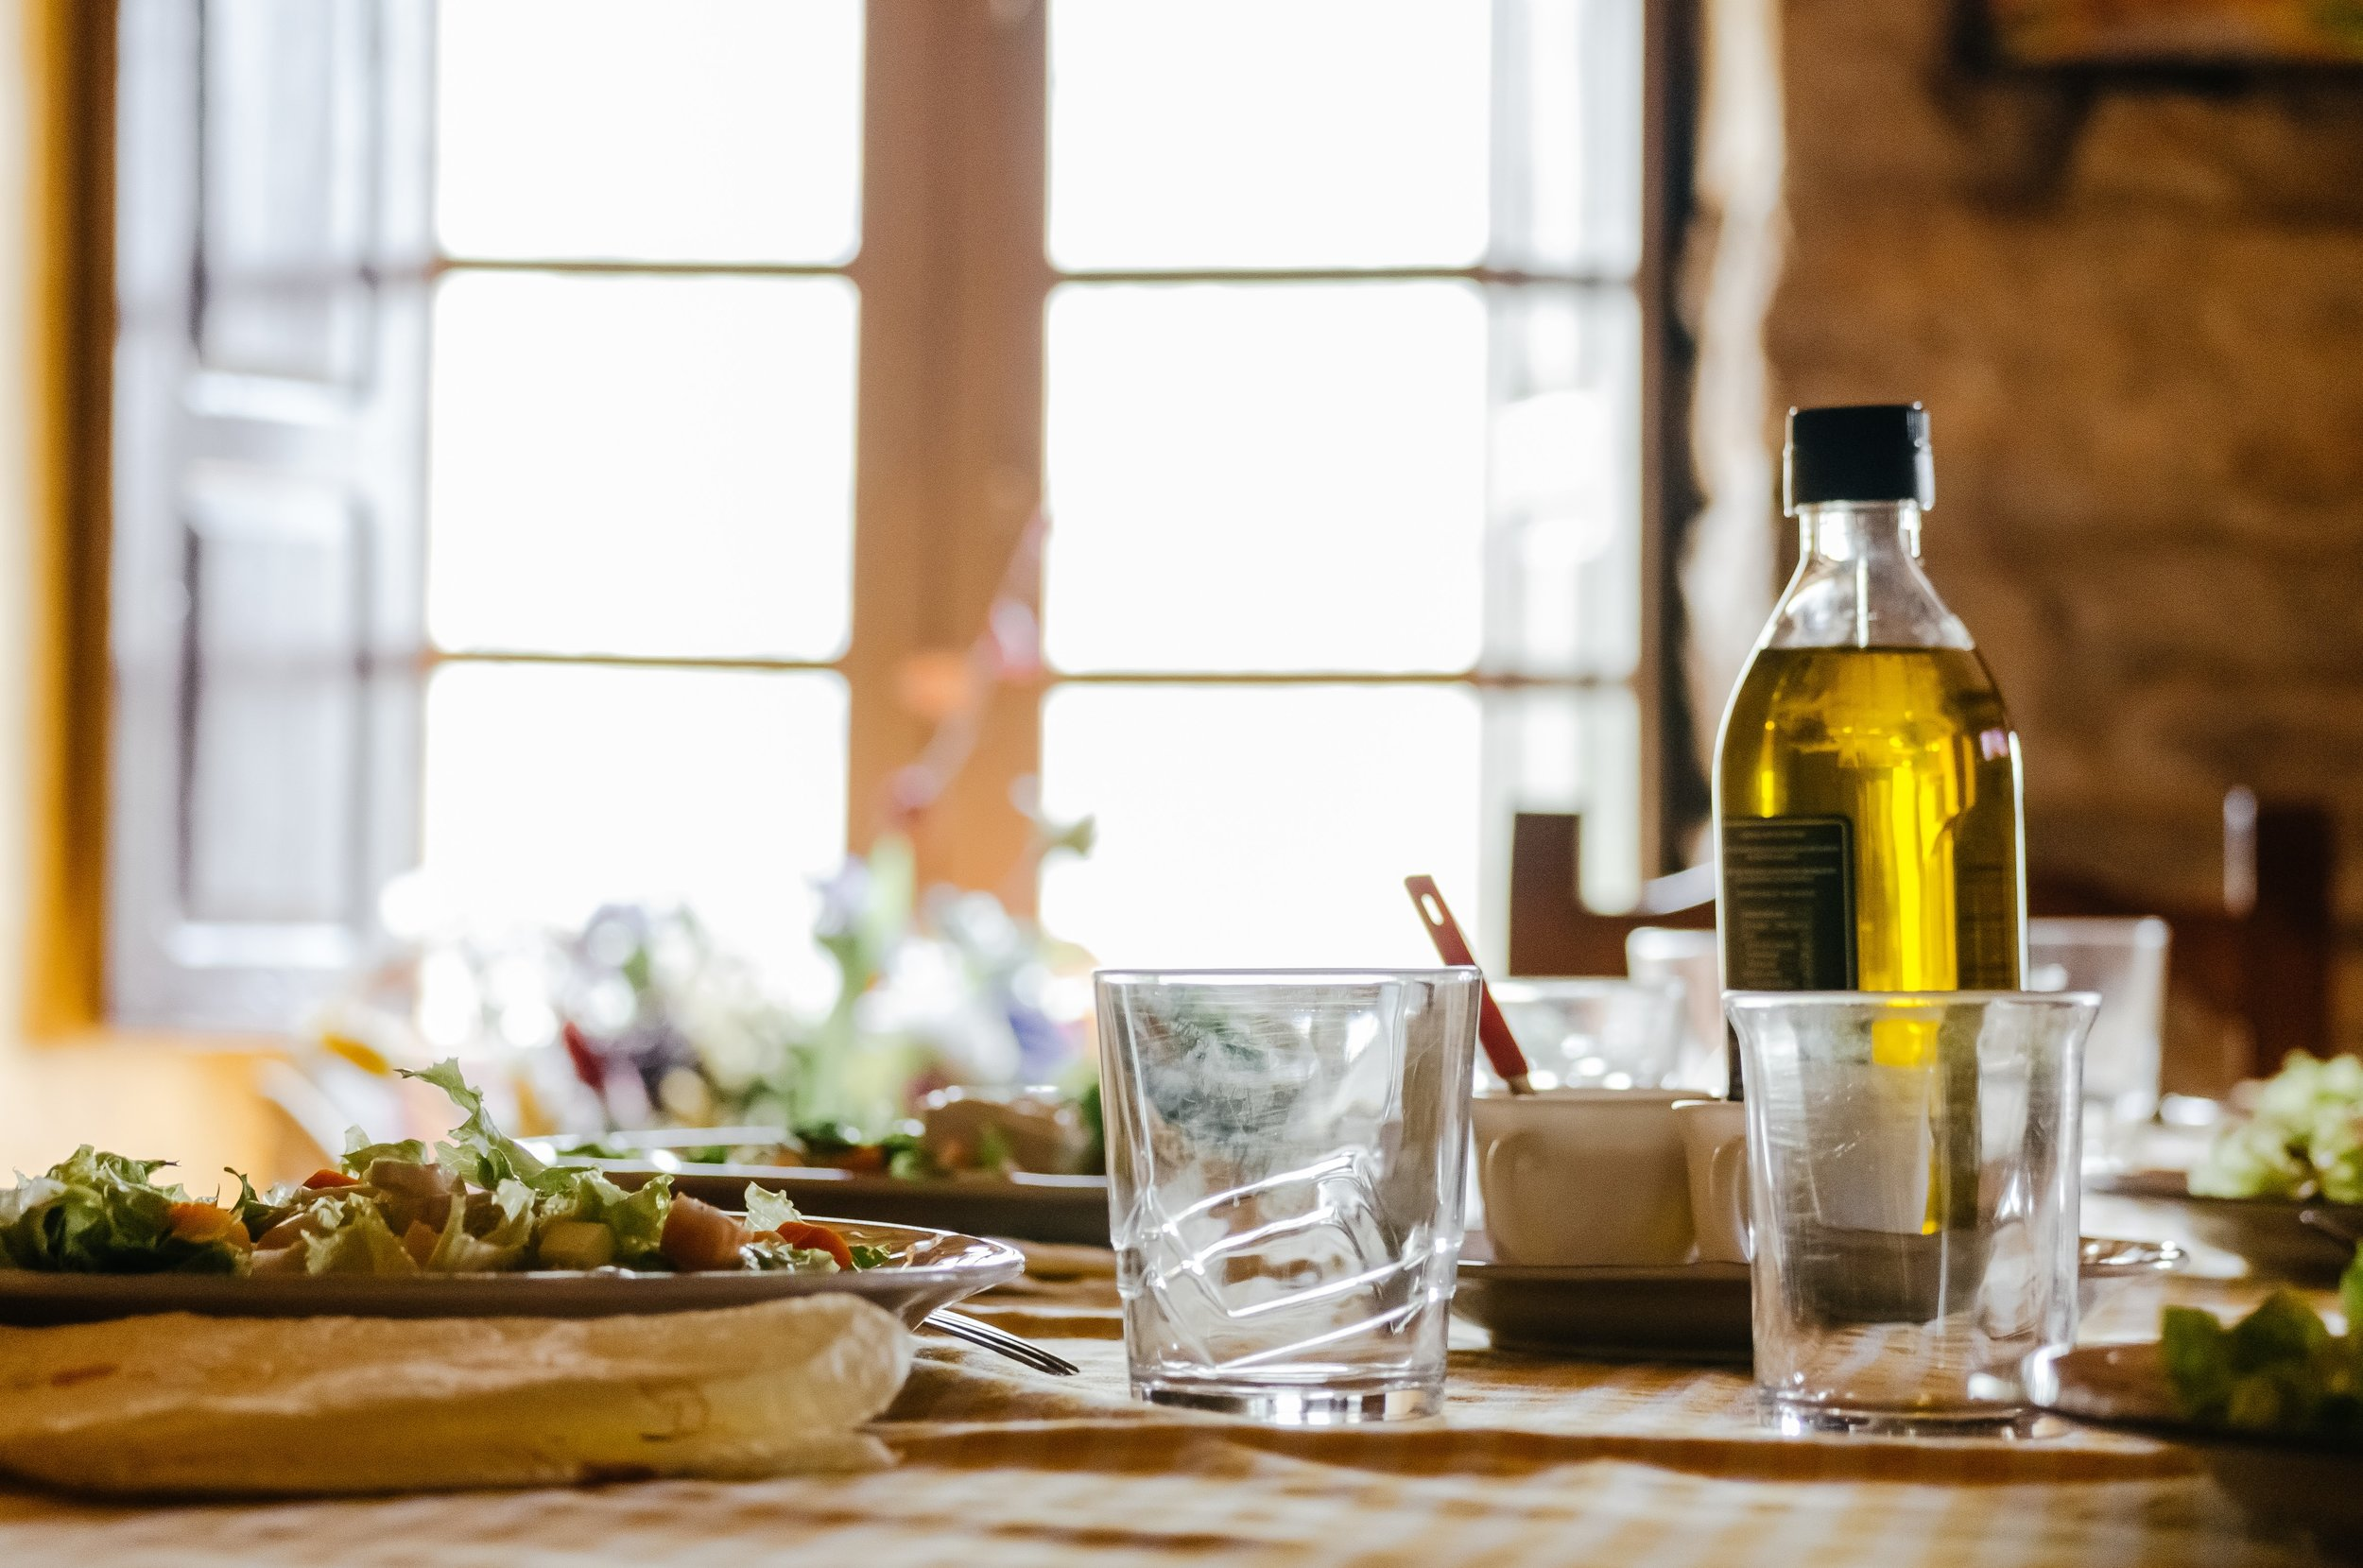 OLIVE OIL & VINEGAR - Sample gourmet olive oils and vinegars at our oil & vinegar tasting bar!